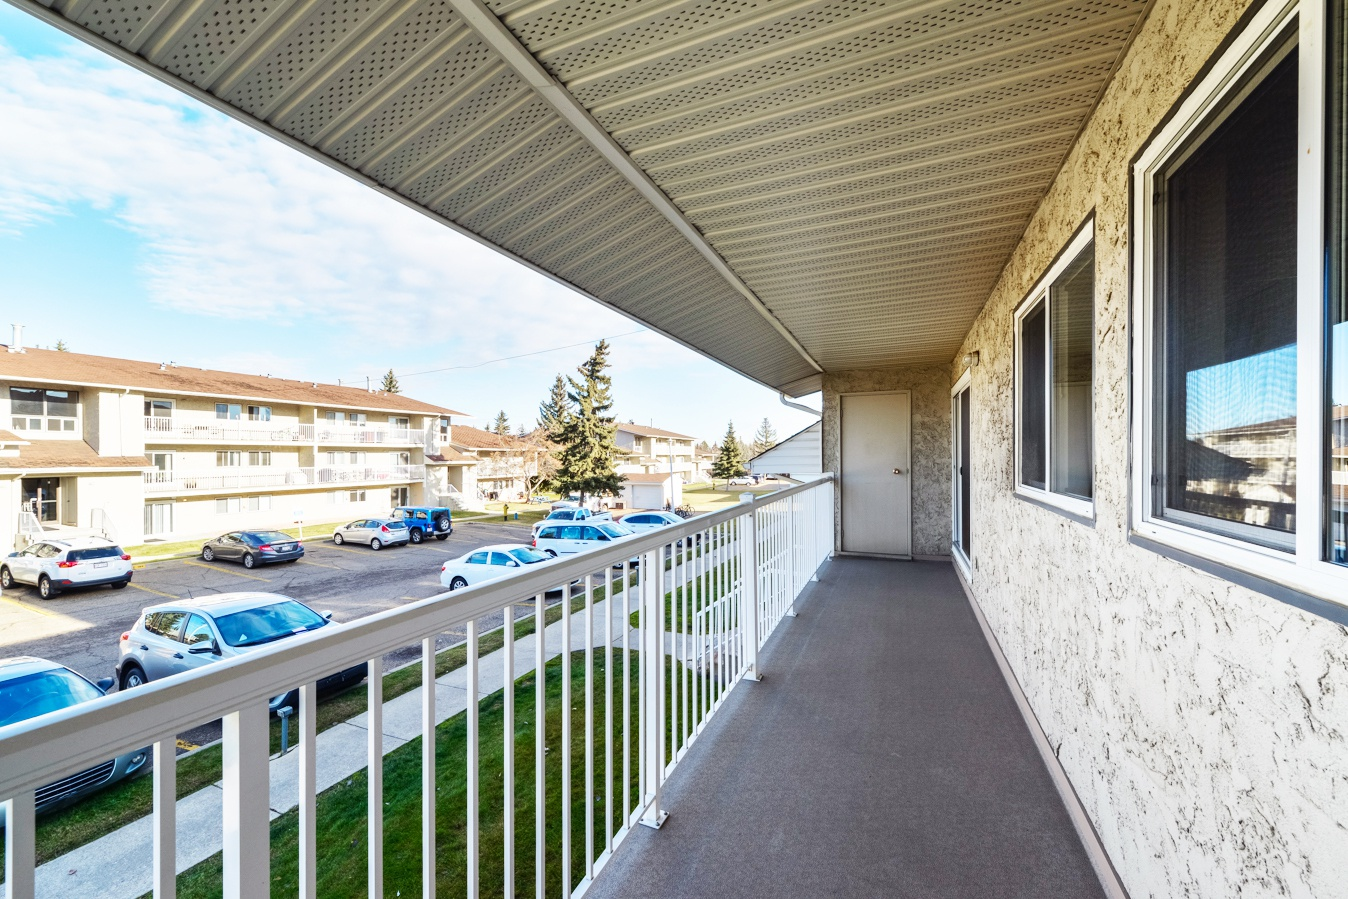 15123-45 Ave. in Edmonton, AB is Now Available